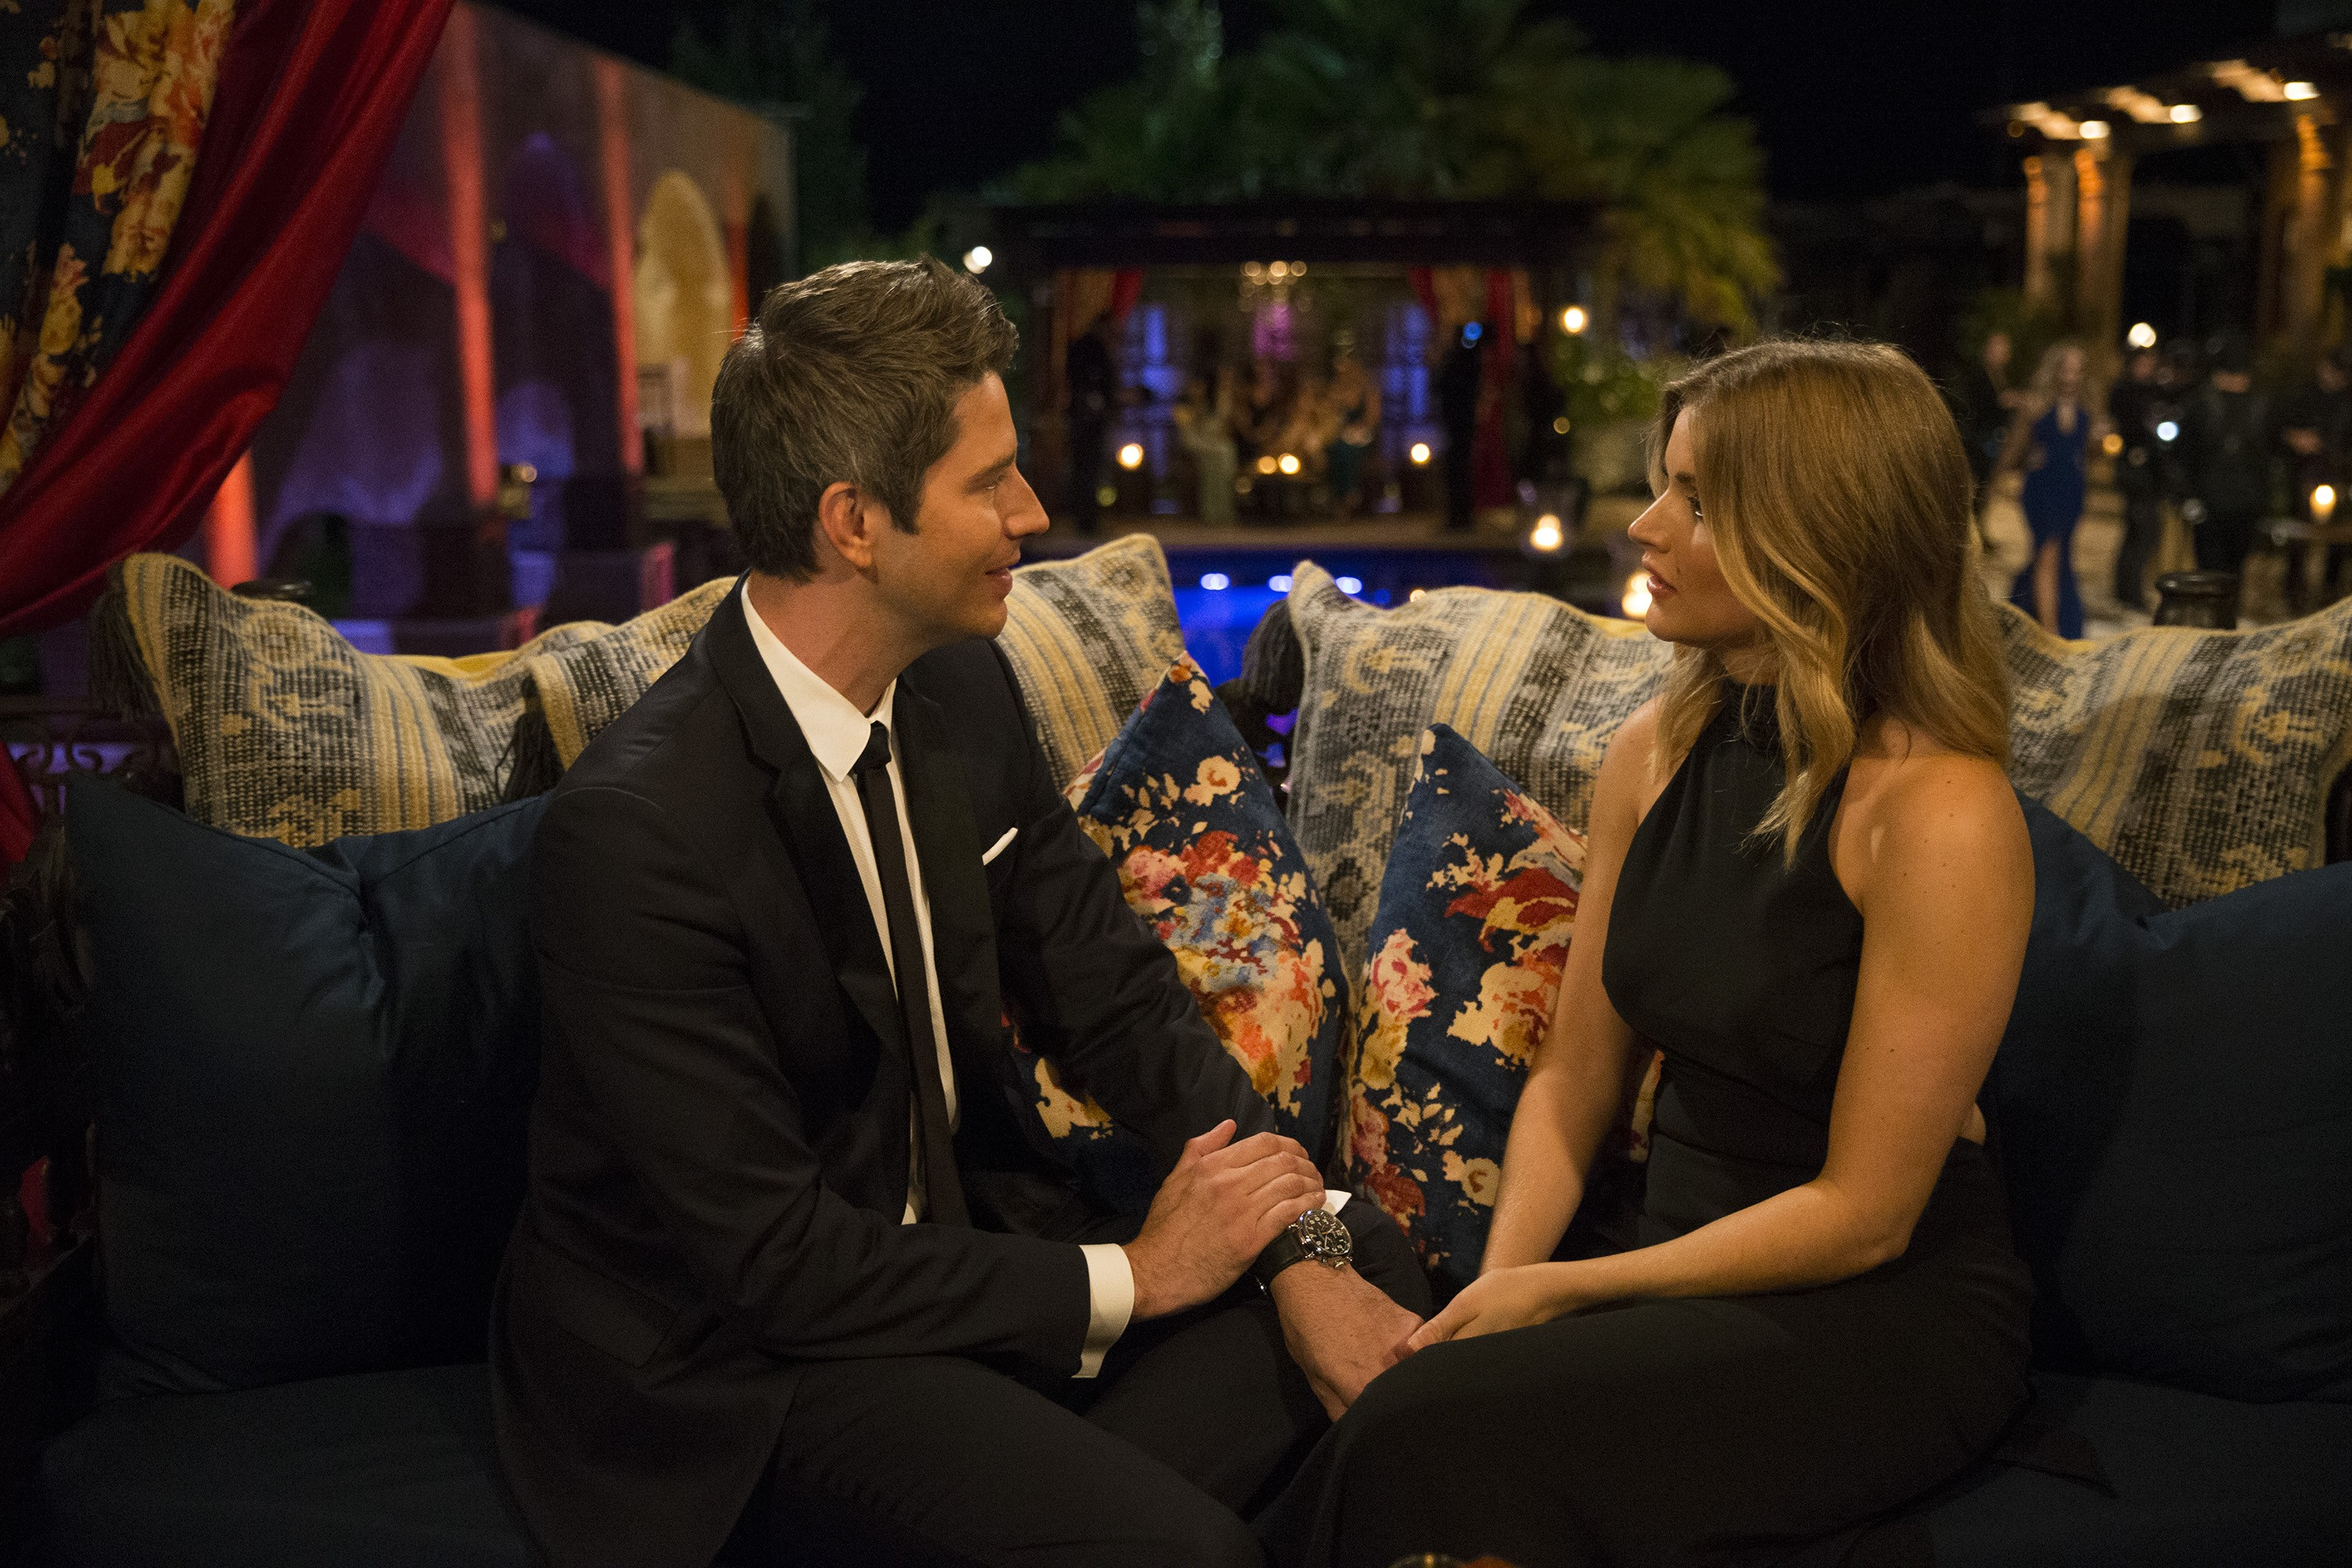 """THE BACHELOR - """"Episode 2201"""" - What do a quirky, cute set decorator who has a thing for taxidermy, death and zombies; a Yale graduate with the business acumen to be a big success, but failing grades in love; a rock-climbing nanny who combines youthful exuberance with classic charm; a lovely Latin lady who can spice things up in the romance department; and a former model who harbors a huge secret all have in common? They all have their sights set on making the Bachelor, Arie Luyendyk Jr., their future husband when the much-anticipated 22nd edition of ABCÕs hit romance reality series ÒThe BachelorÓ premieres, MONDAY, JAN. 1 (8:00-10:01 p.m. EST), on The ABC Television Network. (ABC/Paul Hebert)"""